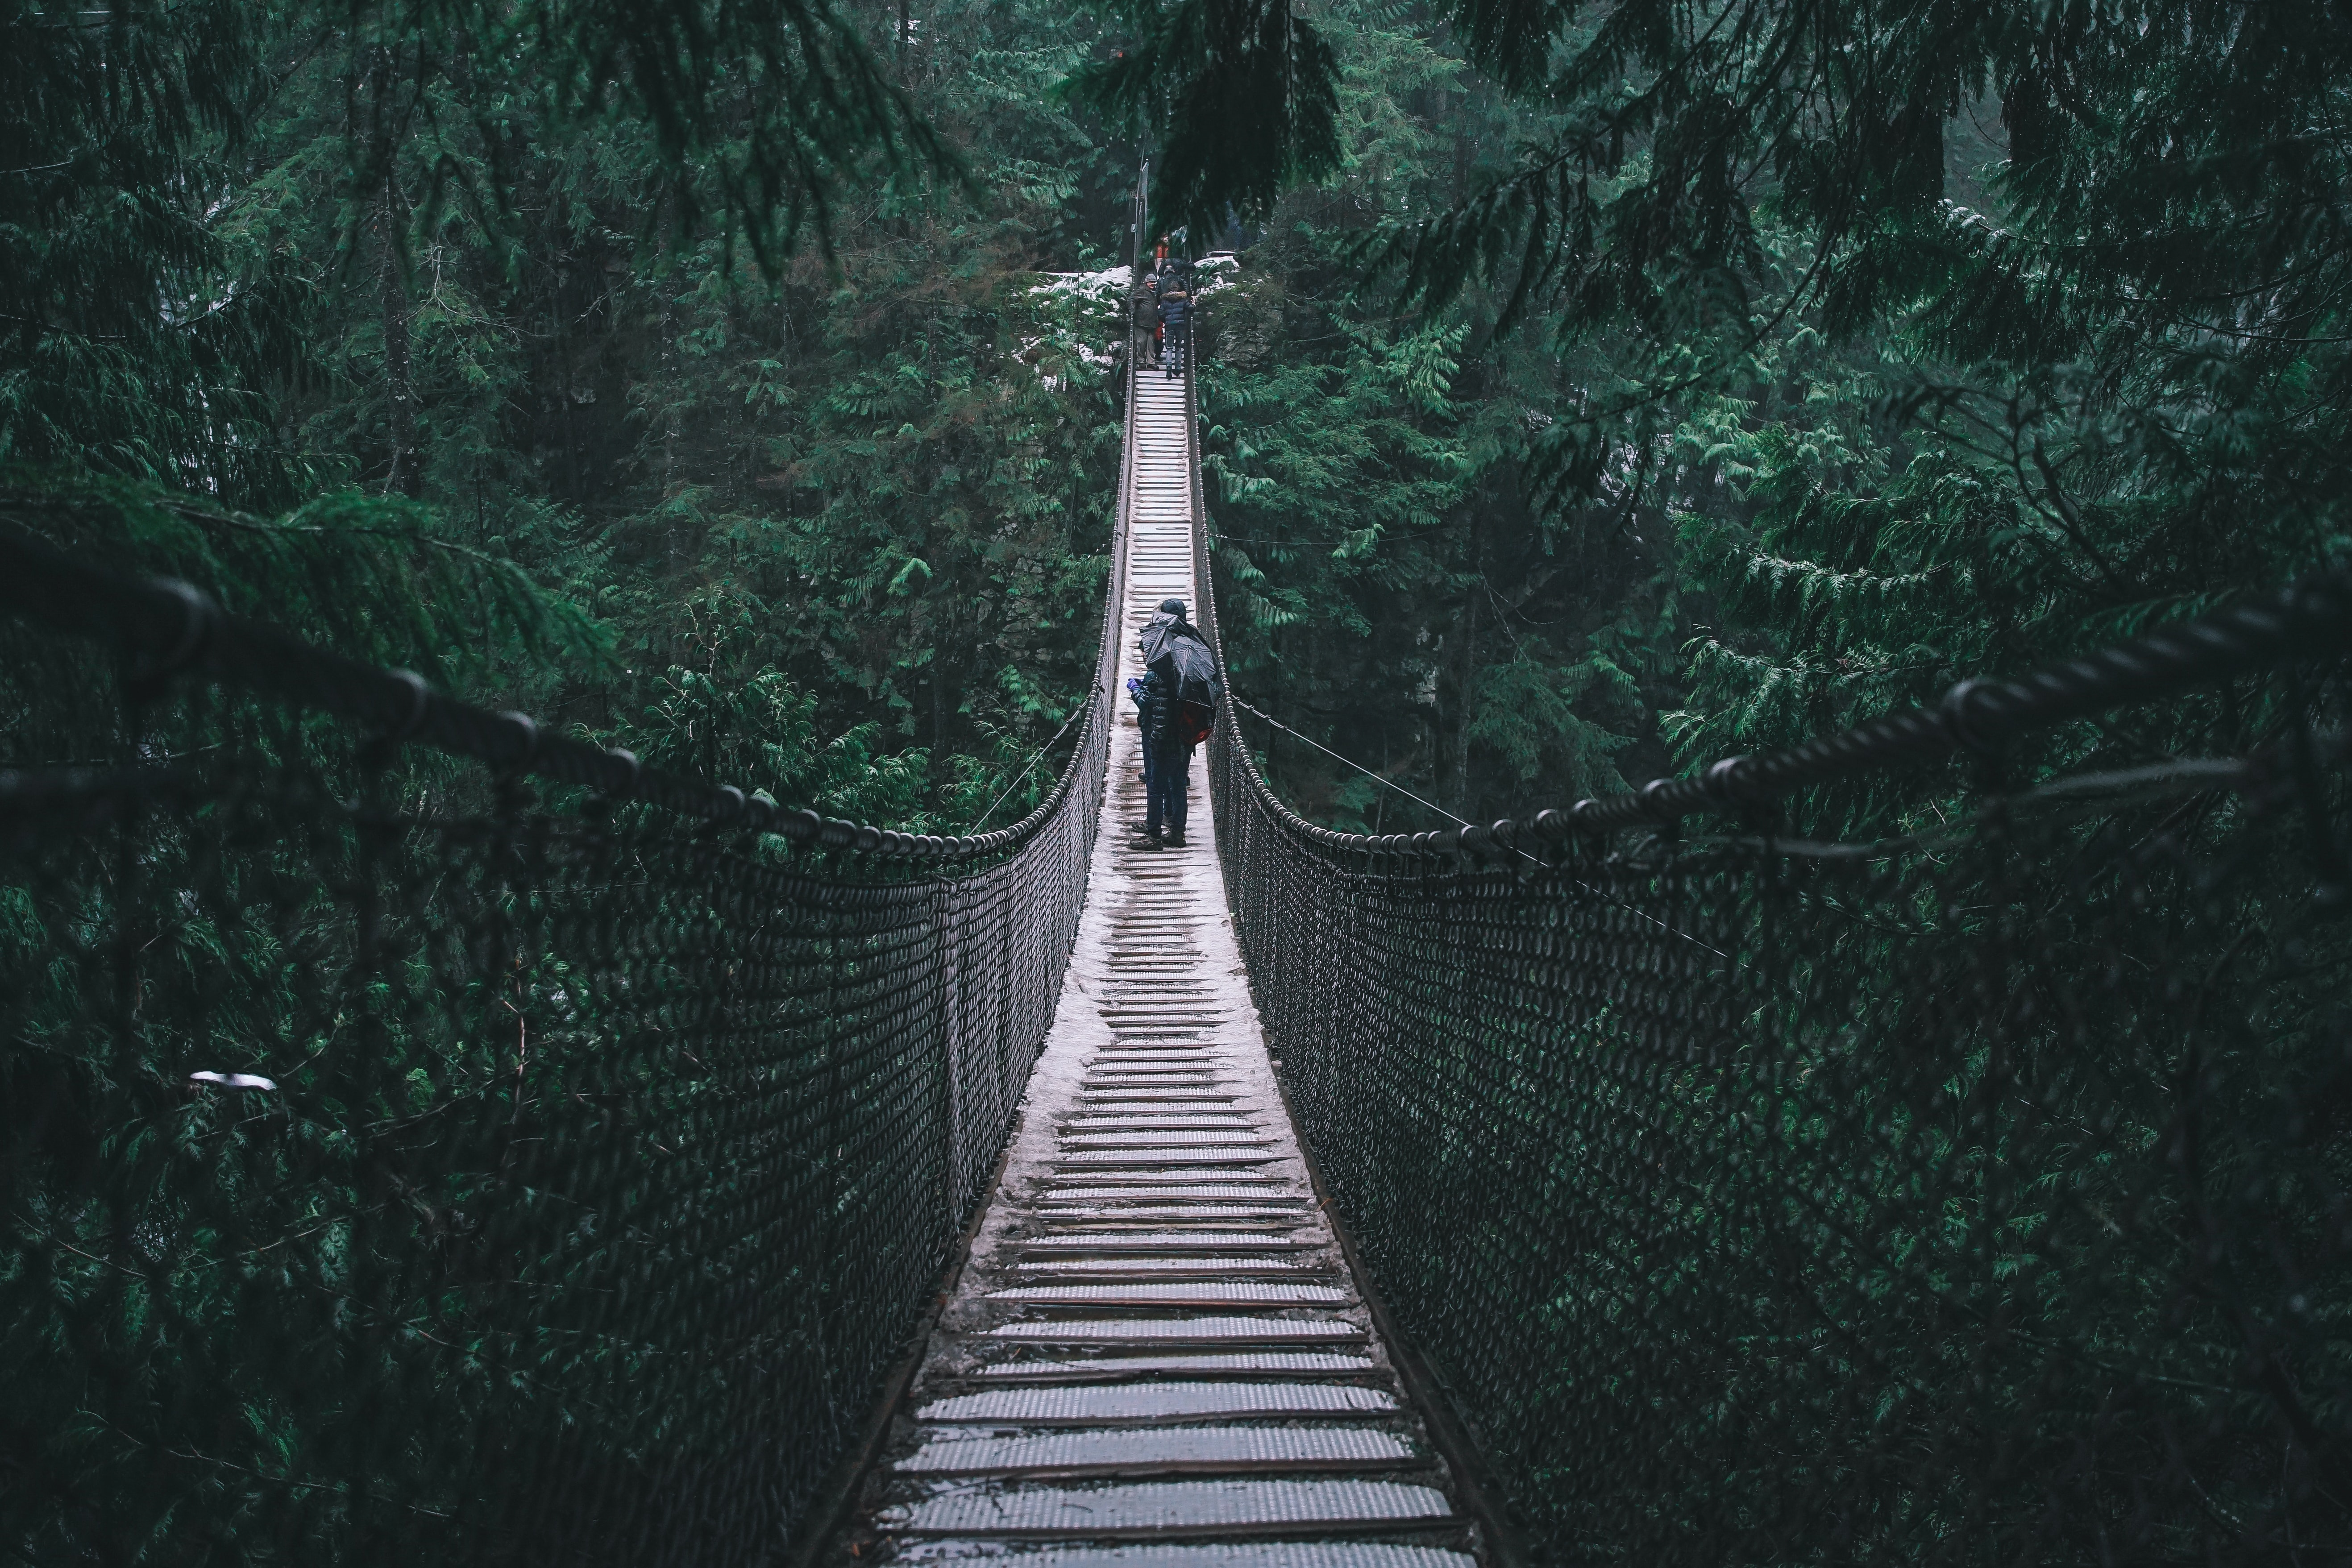 Several people on a suspension bridge in the middle of a lush forest